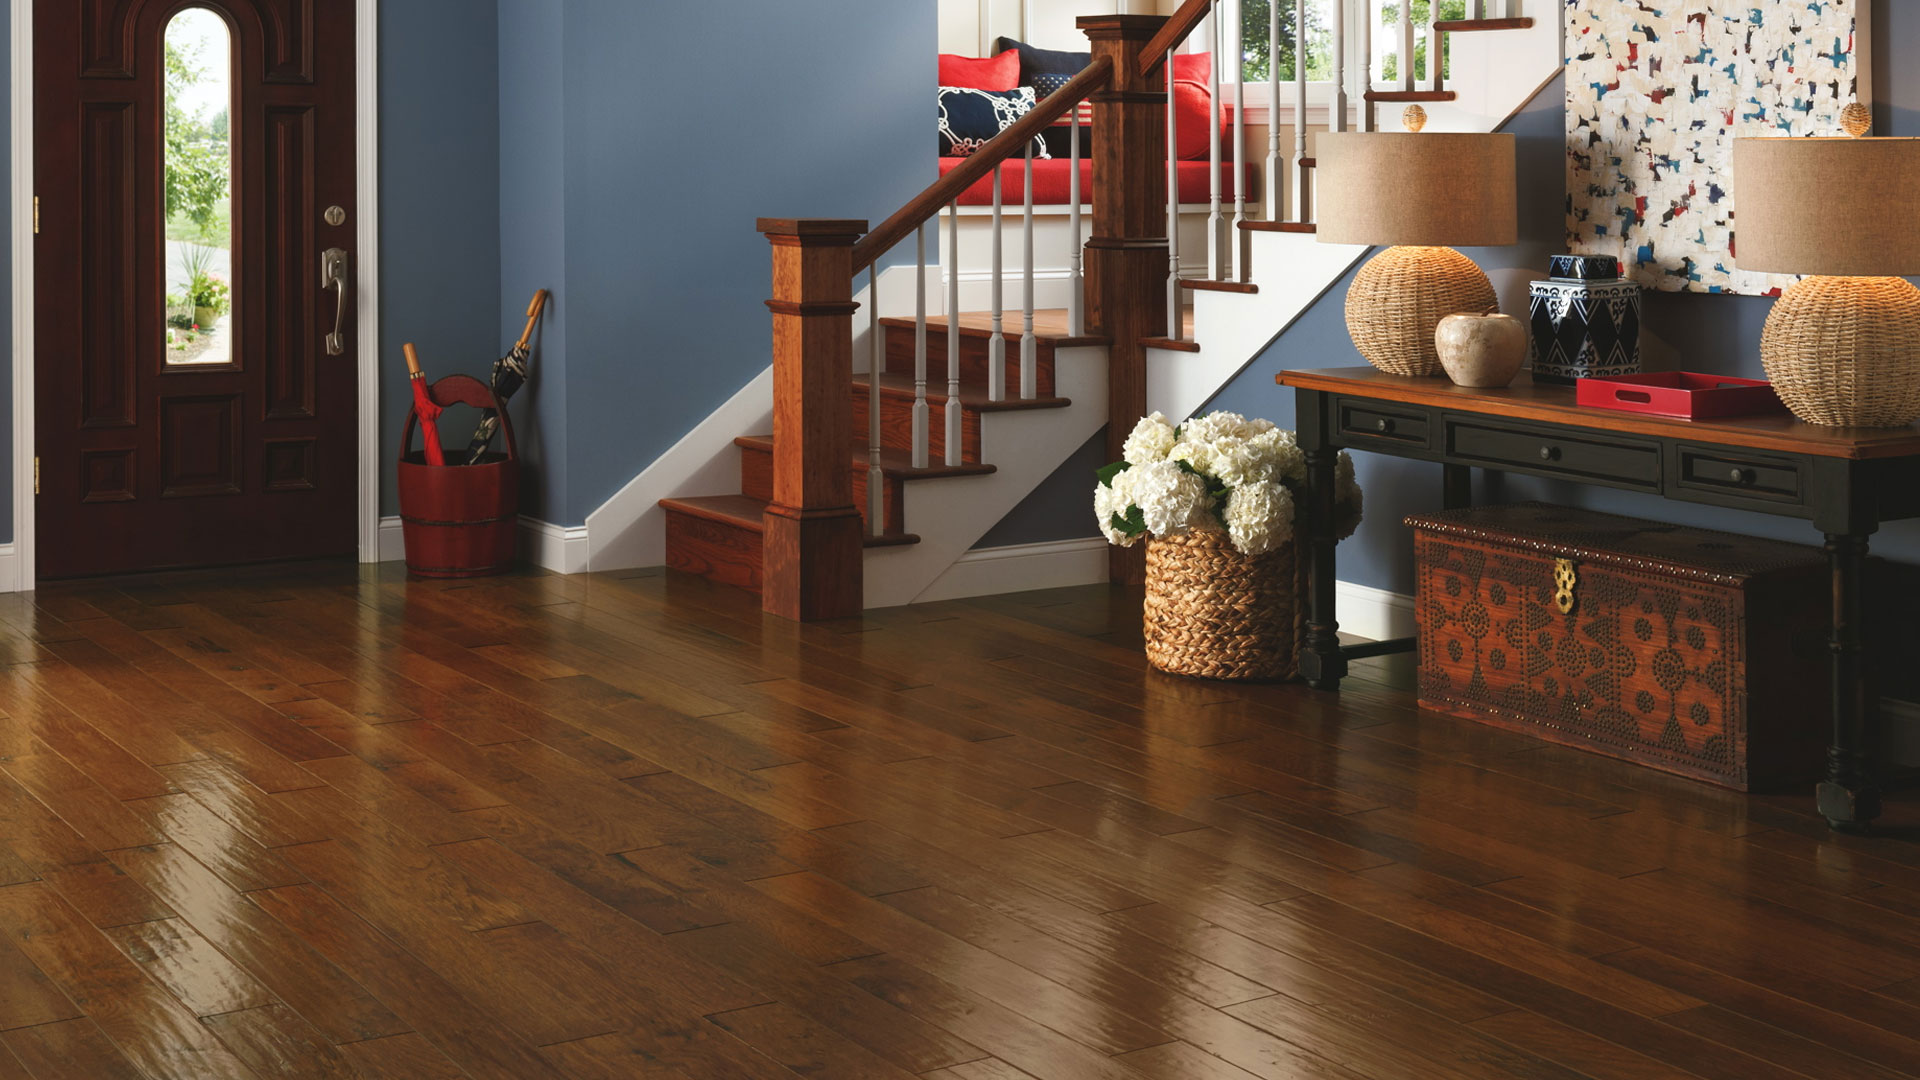 Hardwood Flooring from Armstrong